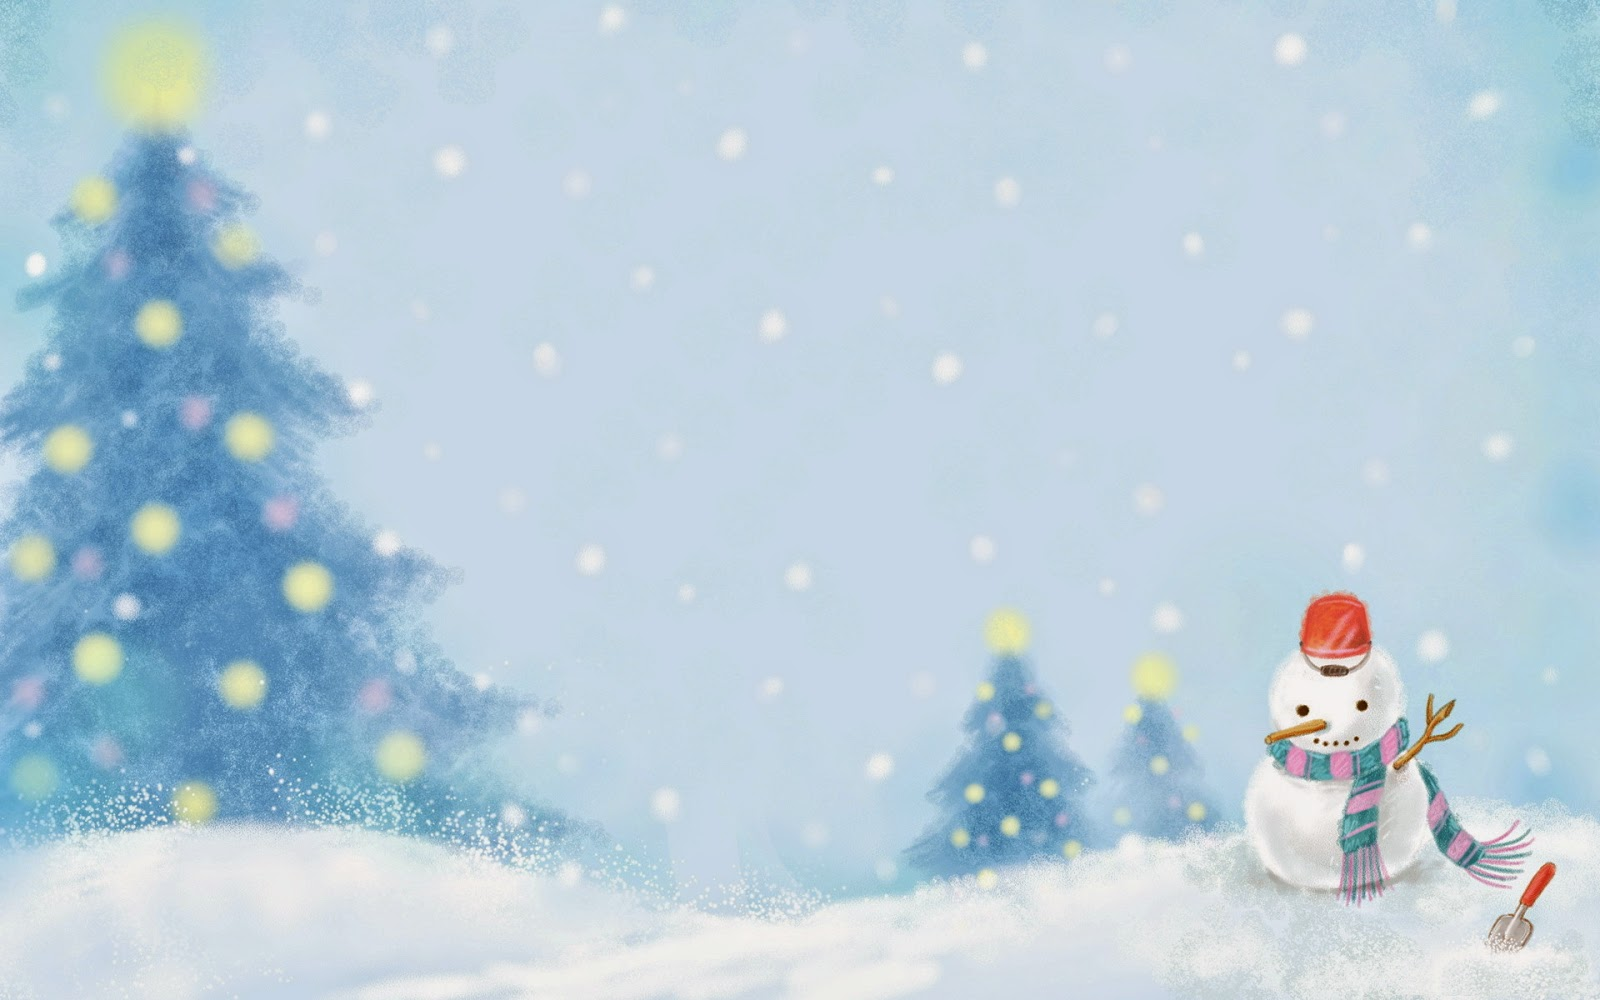 Snowman-drawing-image-for-kids-wishes-post-card-picture-free-download.jpg